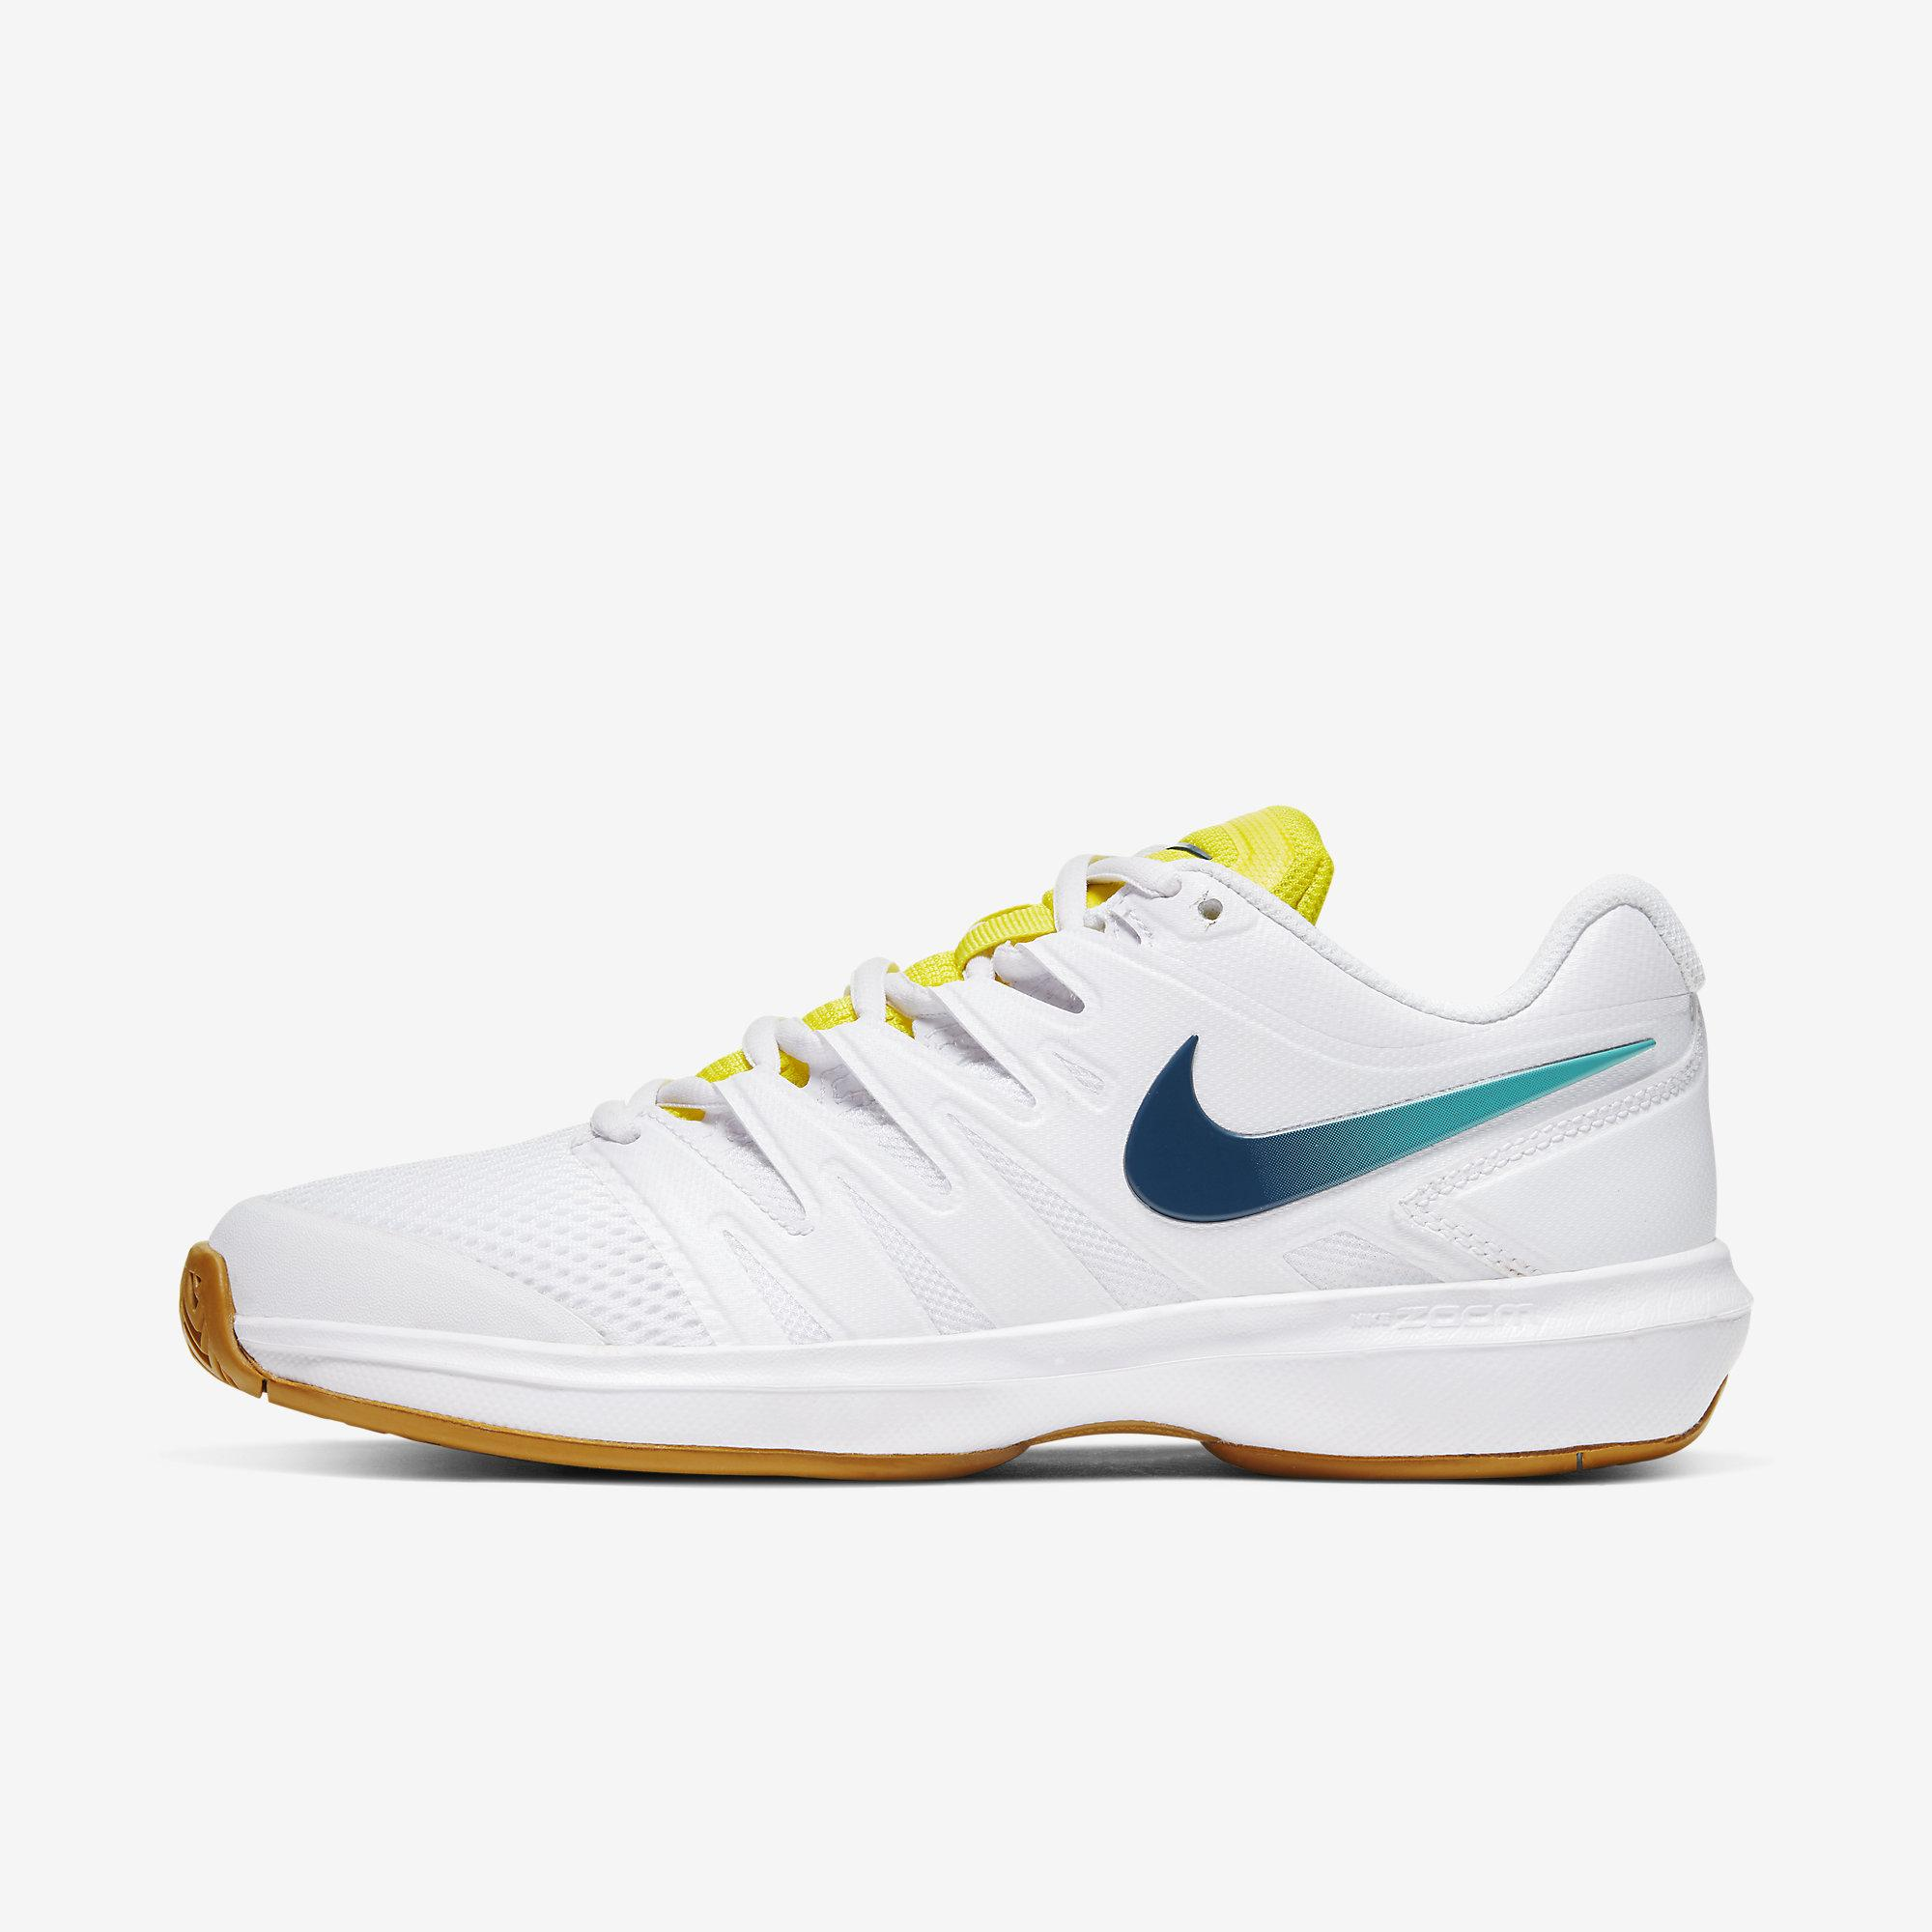 A través de técnico Contador  Nike Womens Air Zoom Prestige Tennis Shoes - White/Blue Valerian -  Tennisnuts.com